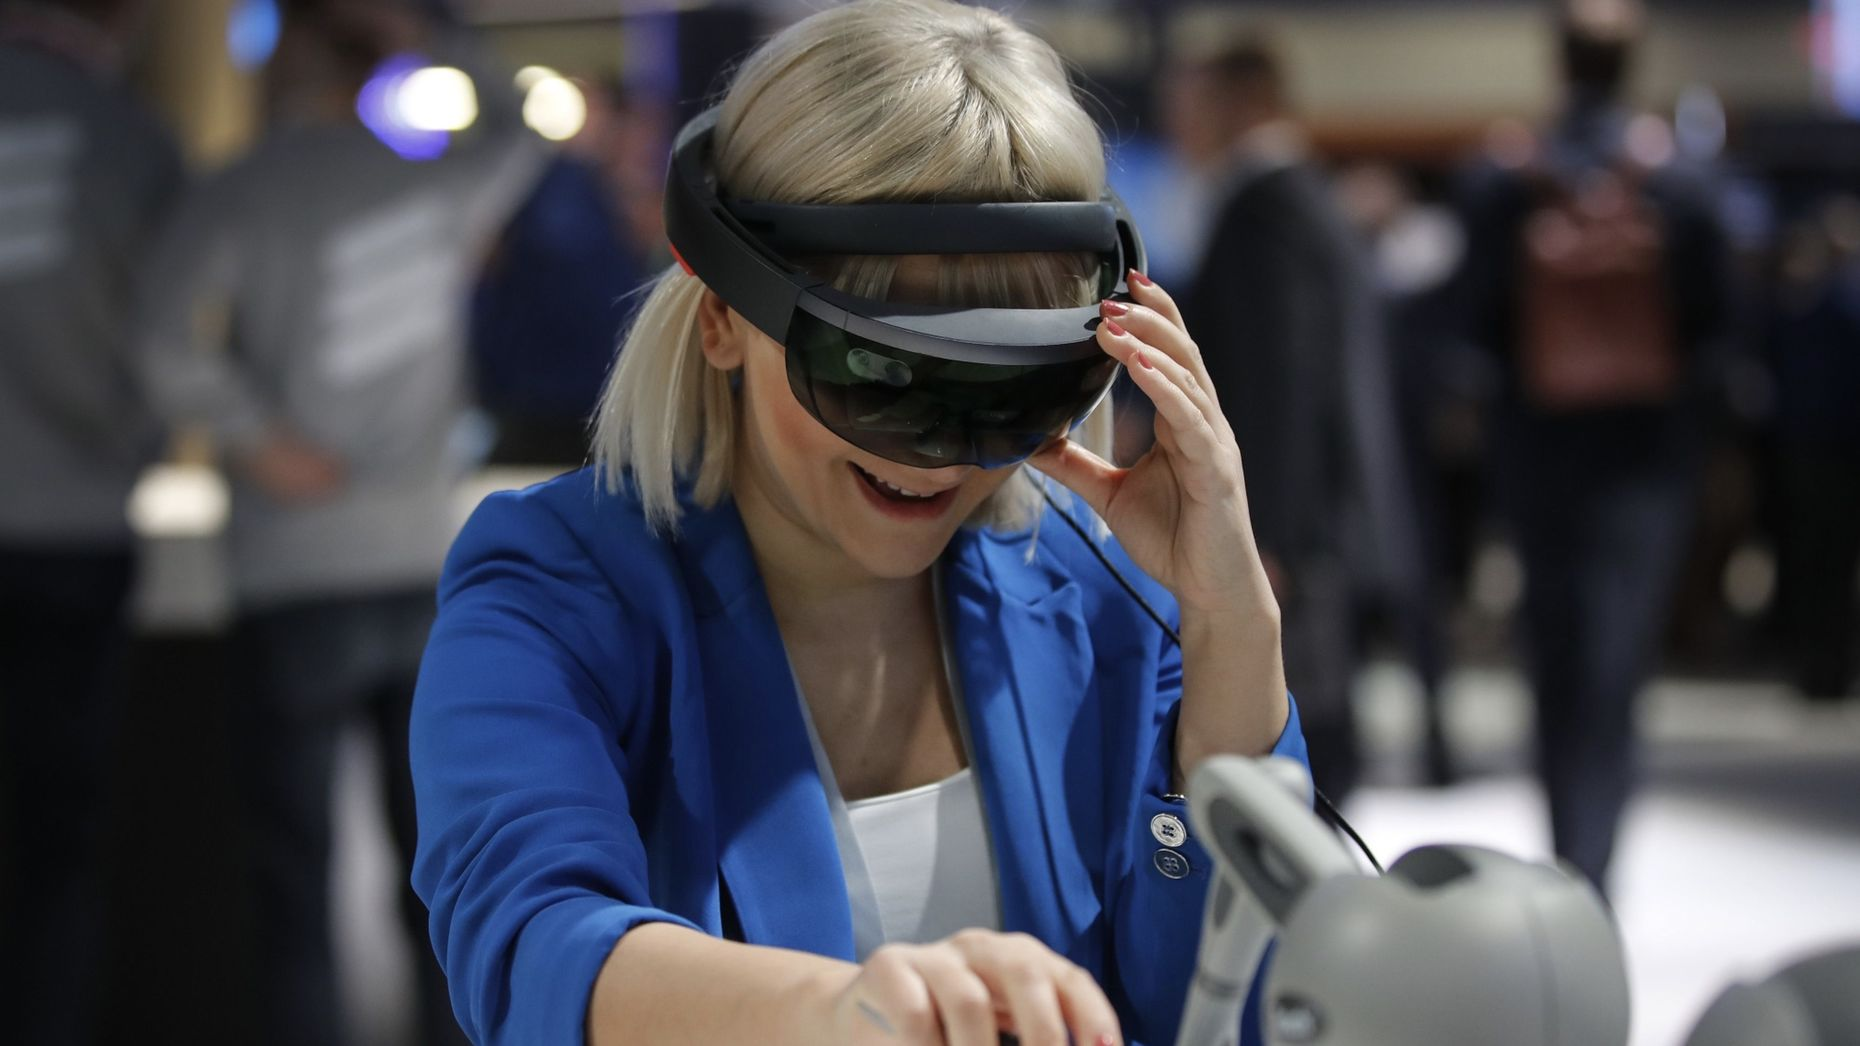 An attendee at Mobile World Congress in Barcelona this year wearing a Microsoft Hololens AR headset. Photo by Bloomberg